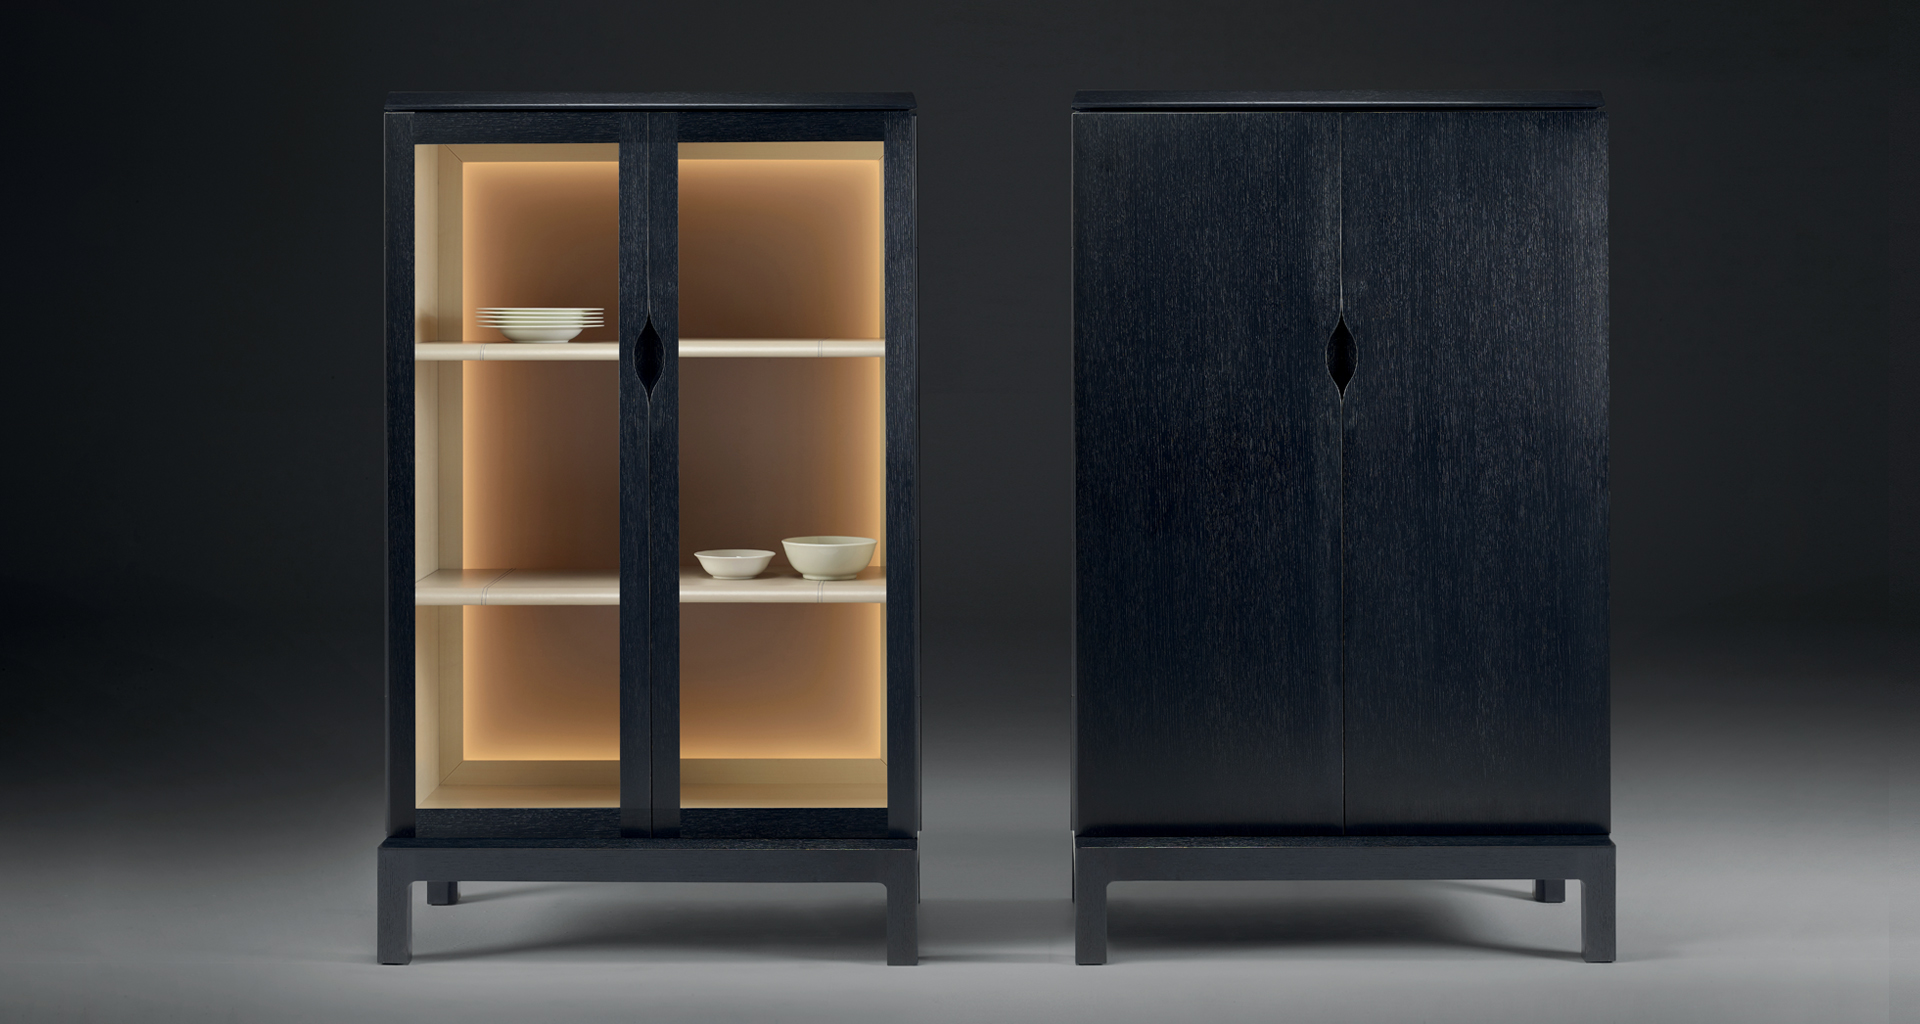 Laos is a wooden cabinet with a recessed handle and wooden or glass doors from Promemoria's Indigo Tales collection | Promemoria